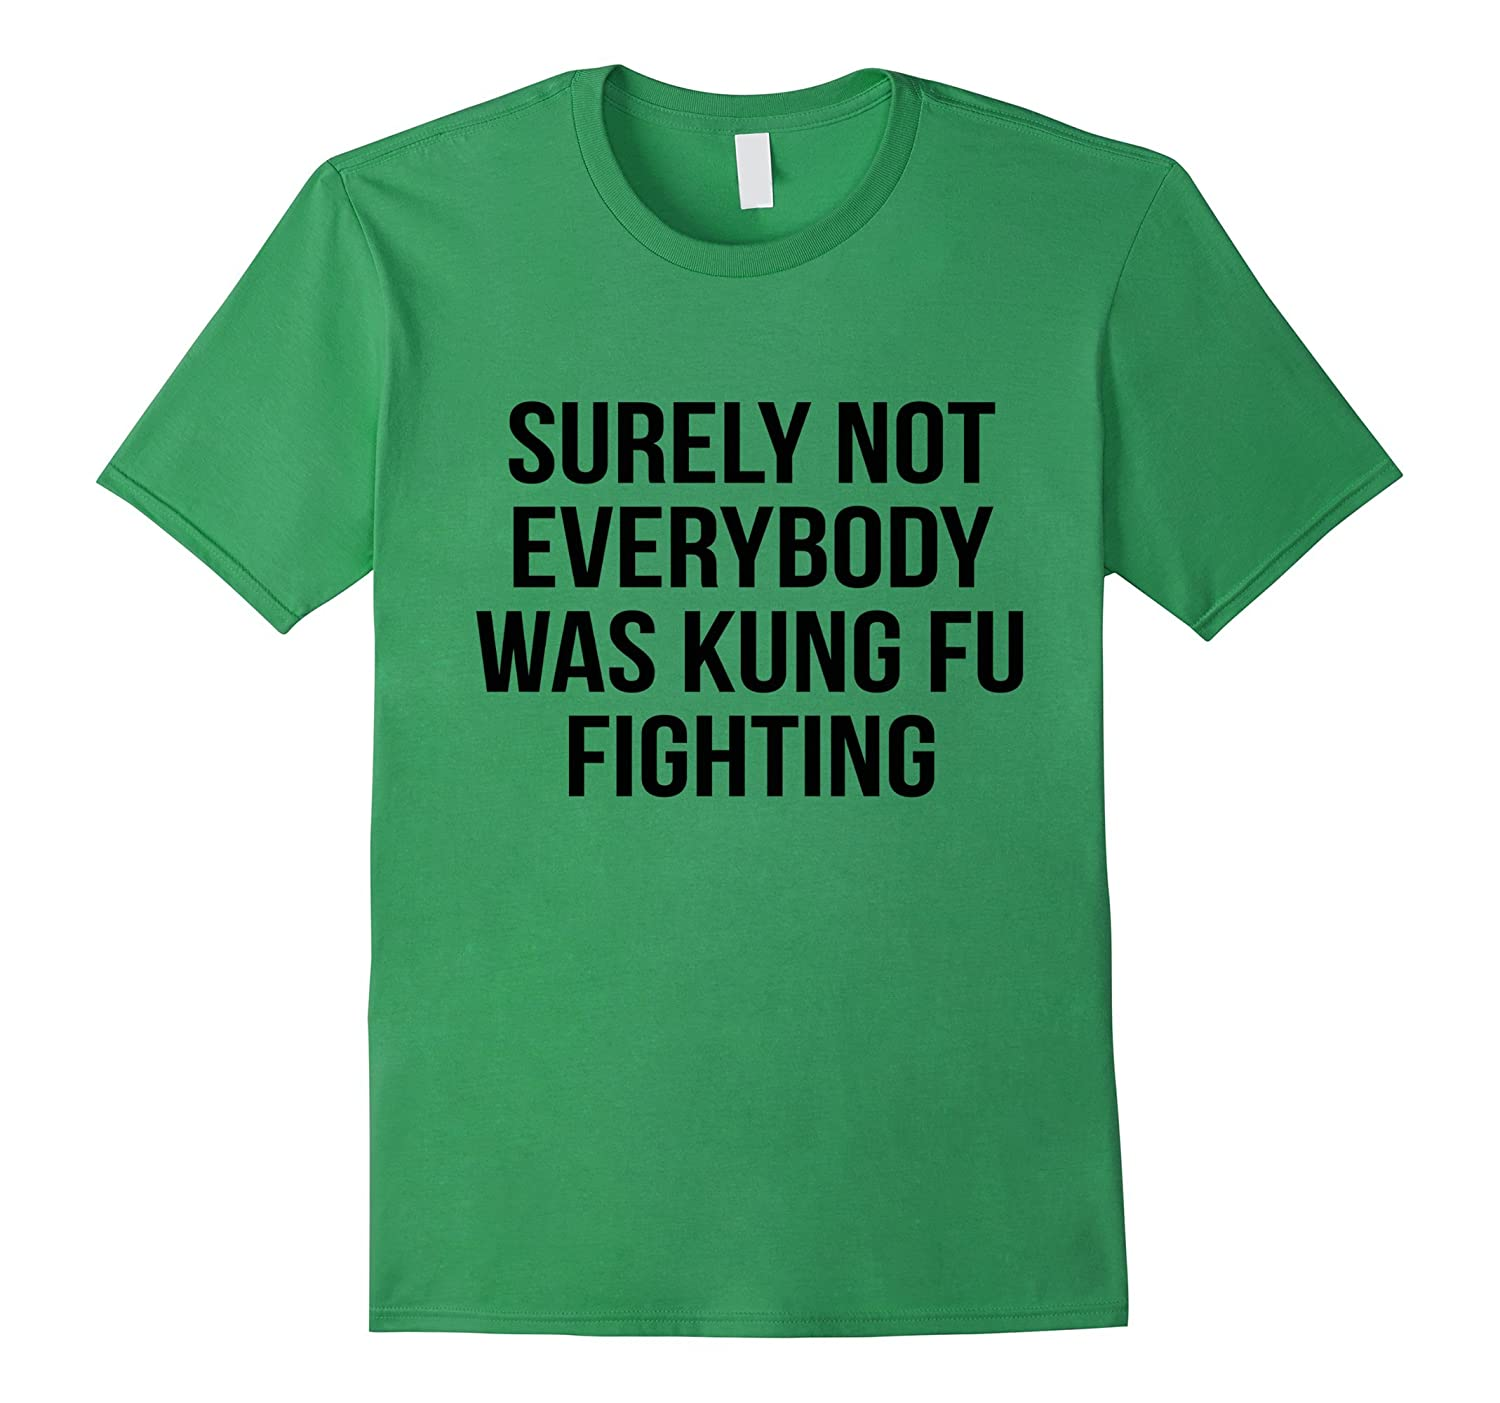 ac467d19 Surely Not Everybody Was Kung Fu Fighting T-Shirt Funny Tee-RT ...